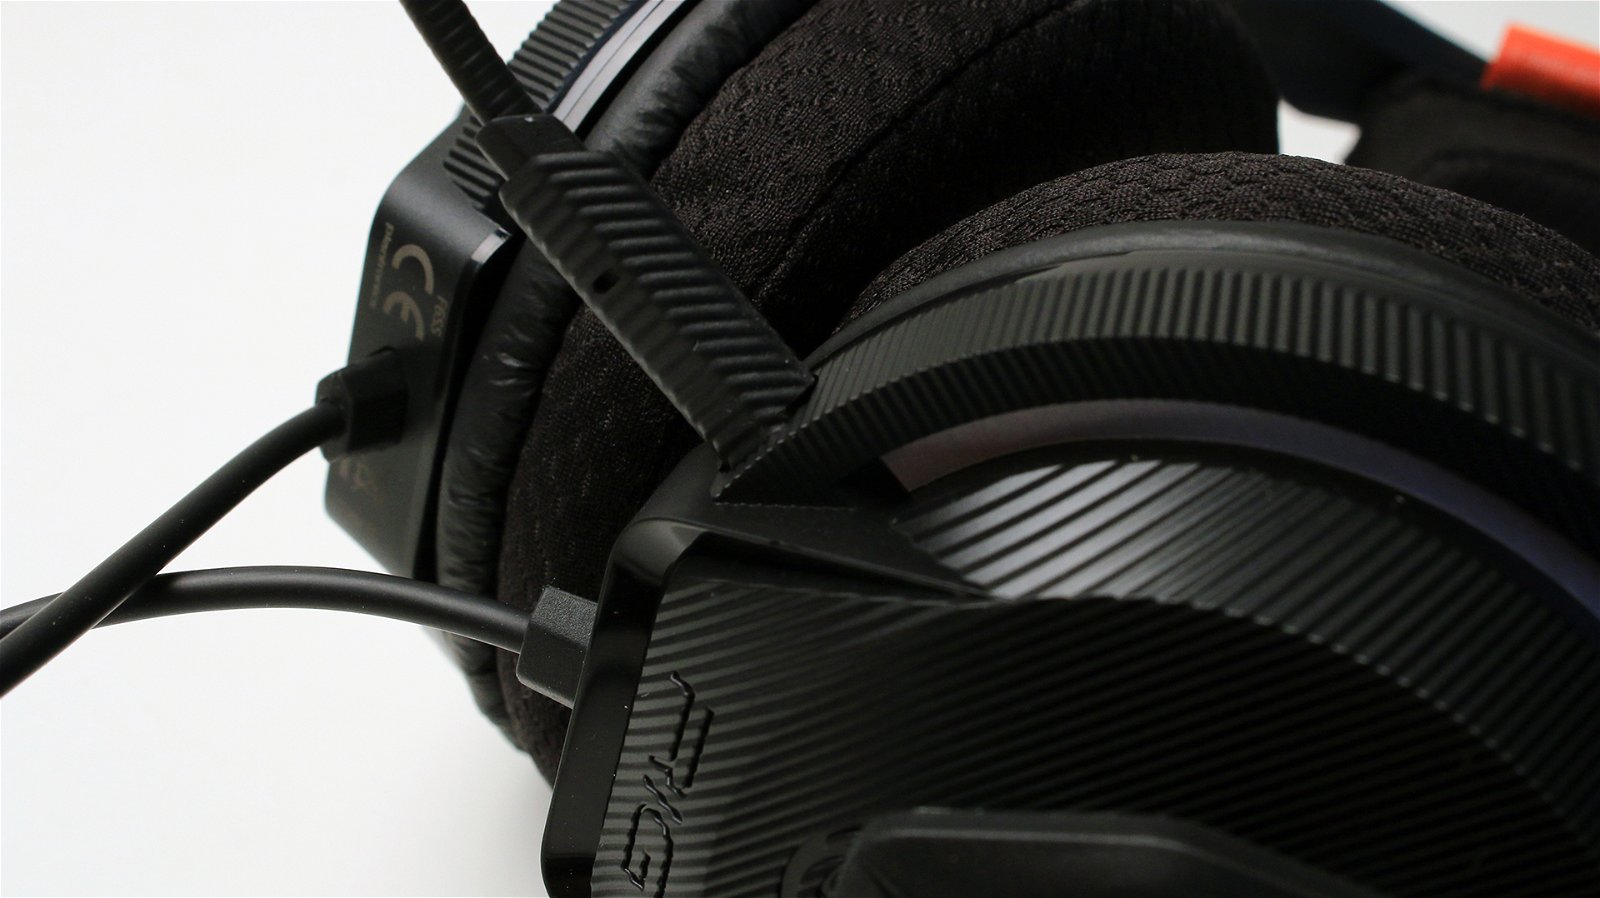 Rig 400 Hs Headset (Hardware) Review 4